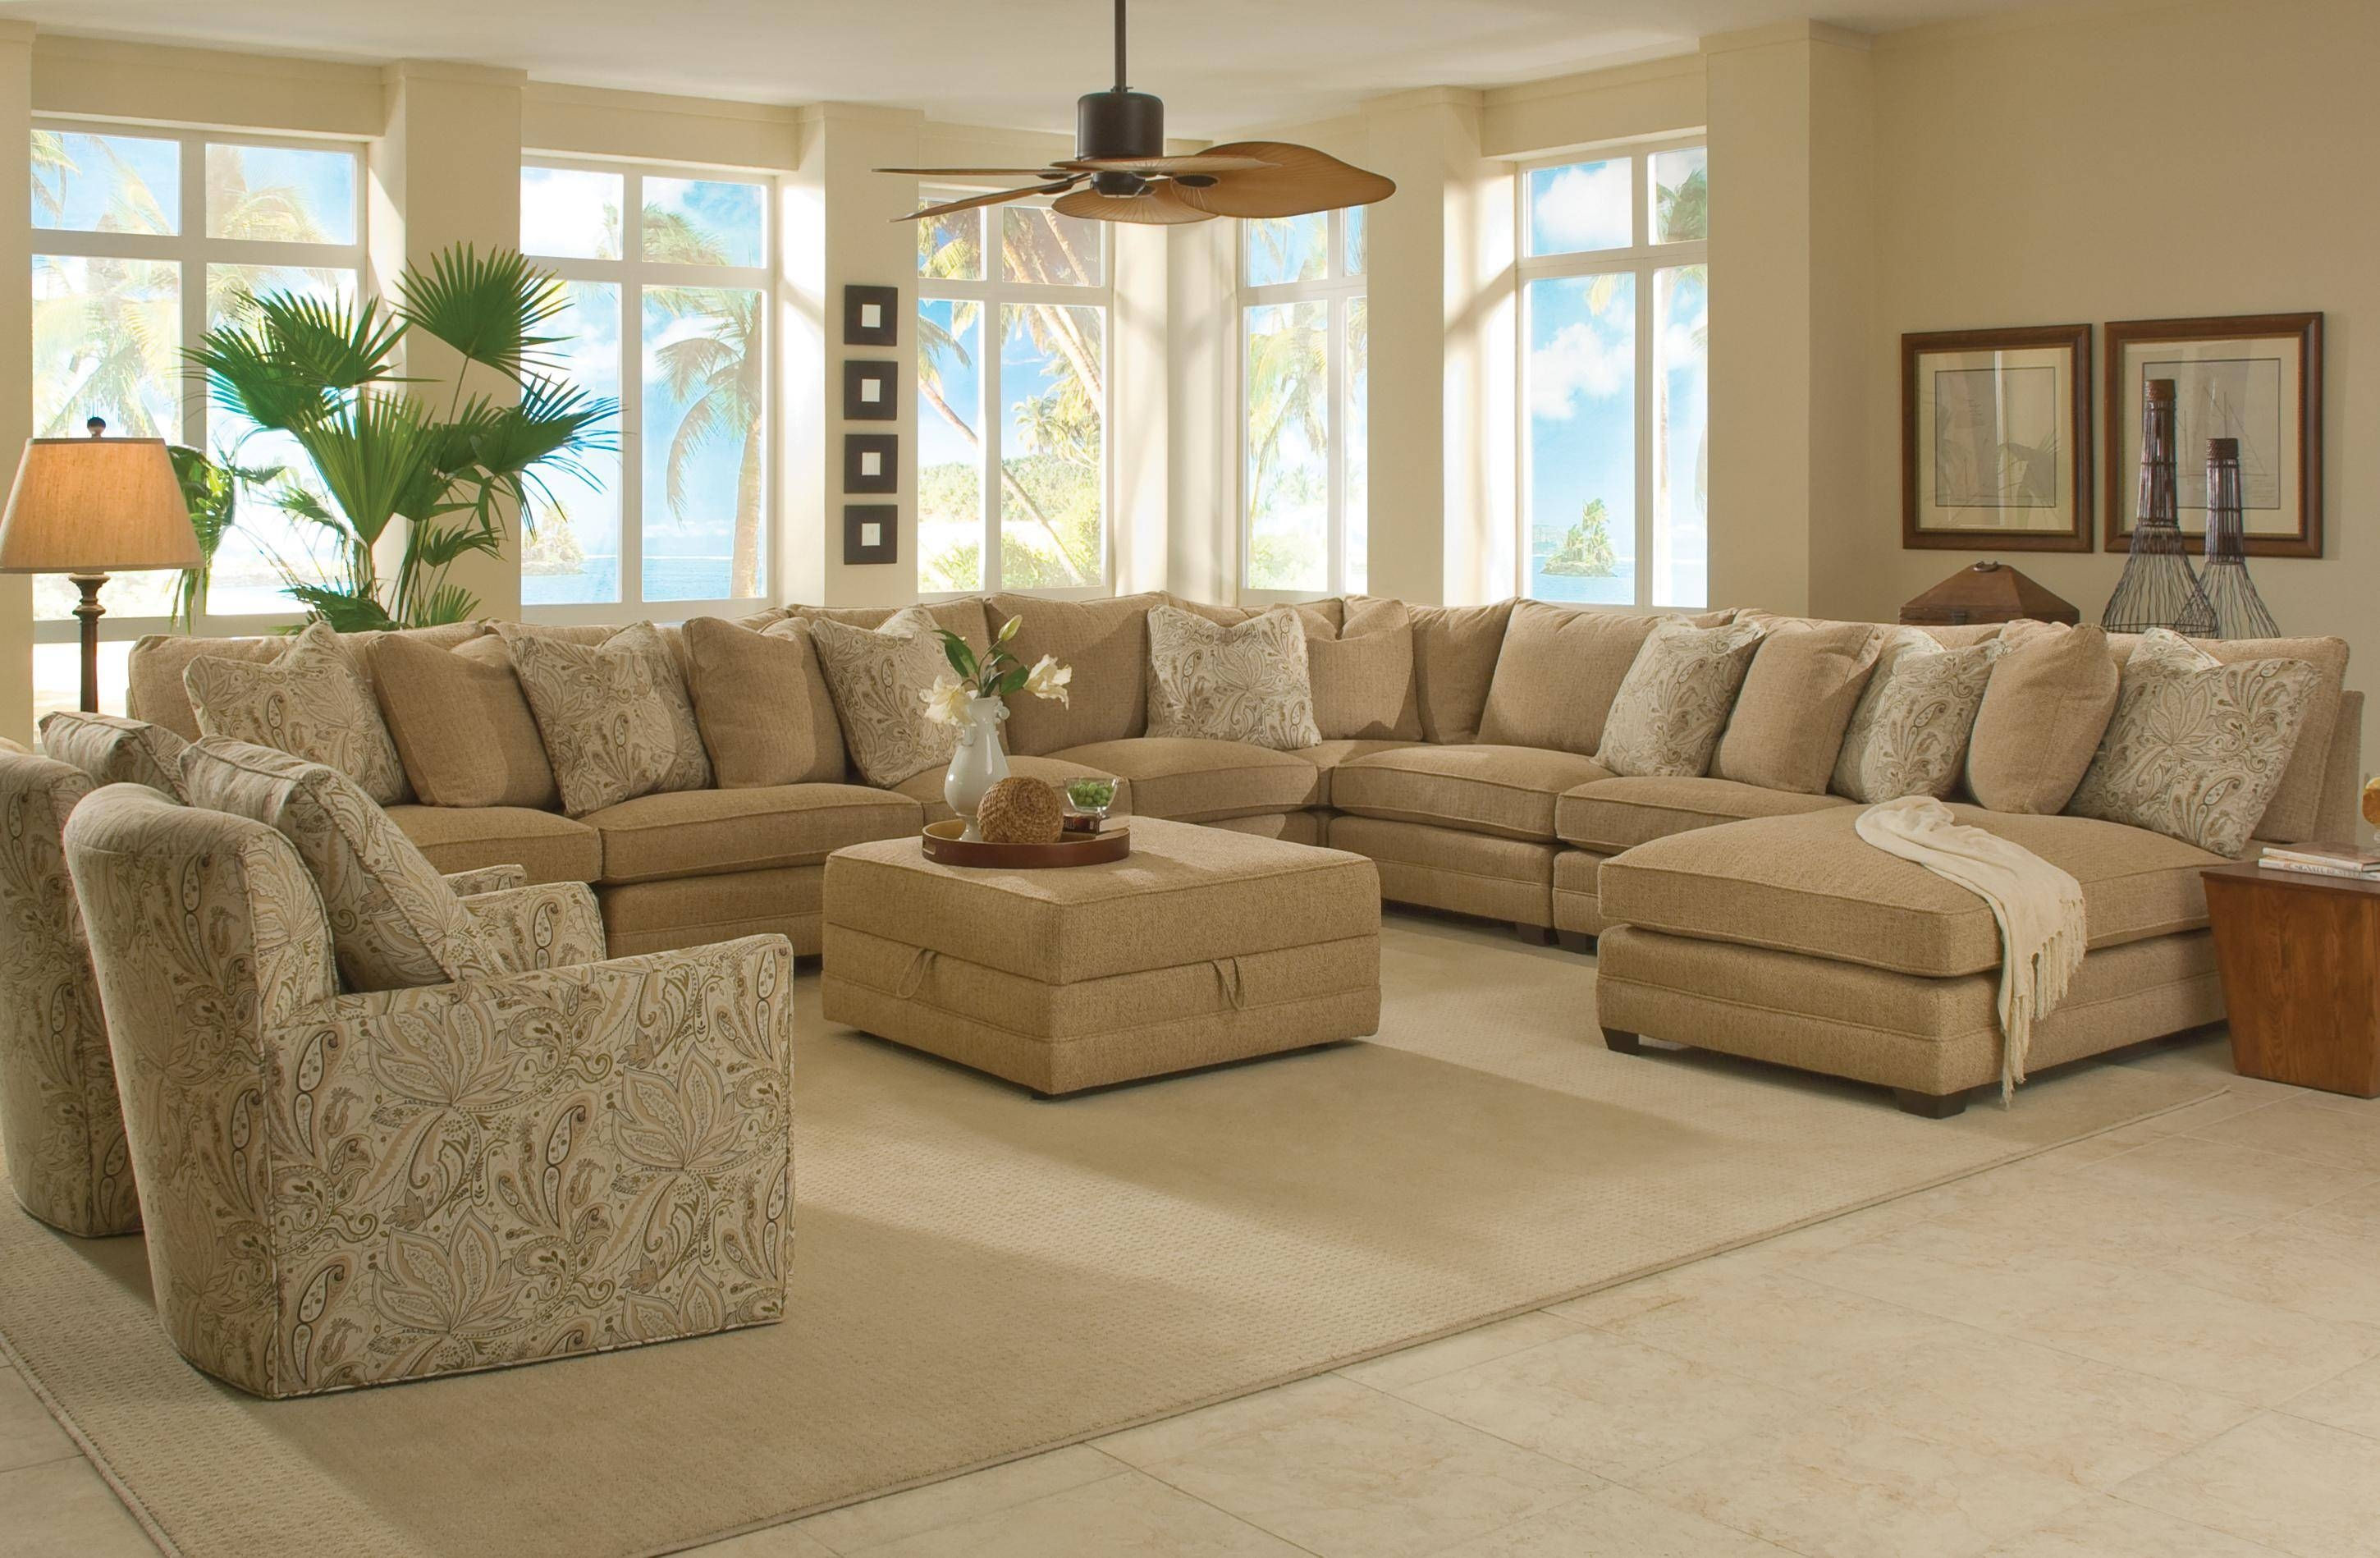 Sam Moore Margo Wide Sectional Sofa | Moore's Home Furnishings regarding Extra Wide Sectional Sofas (Image 26 of 30)